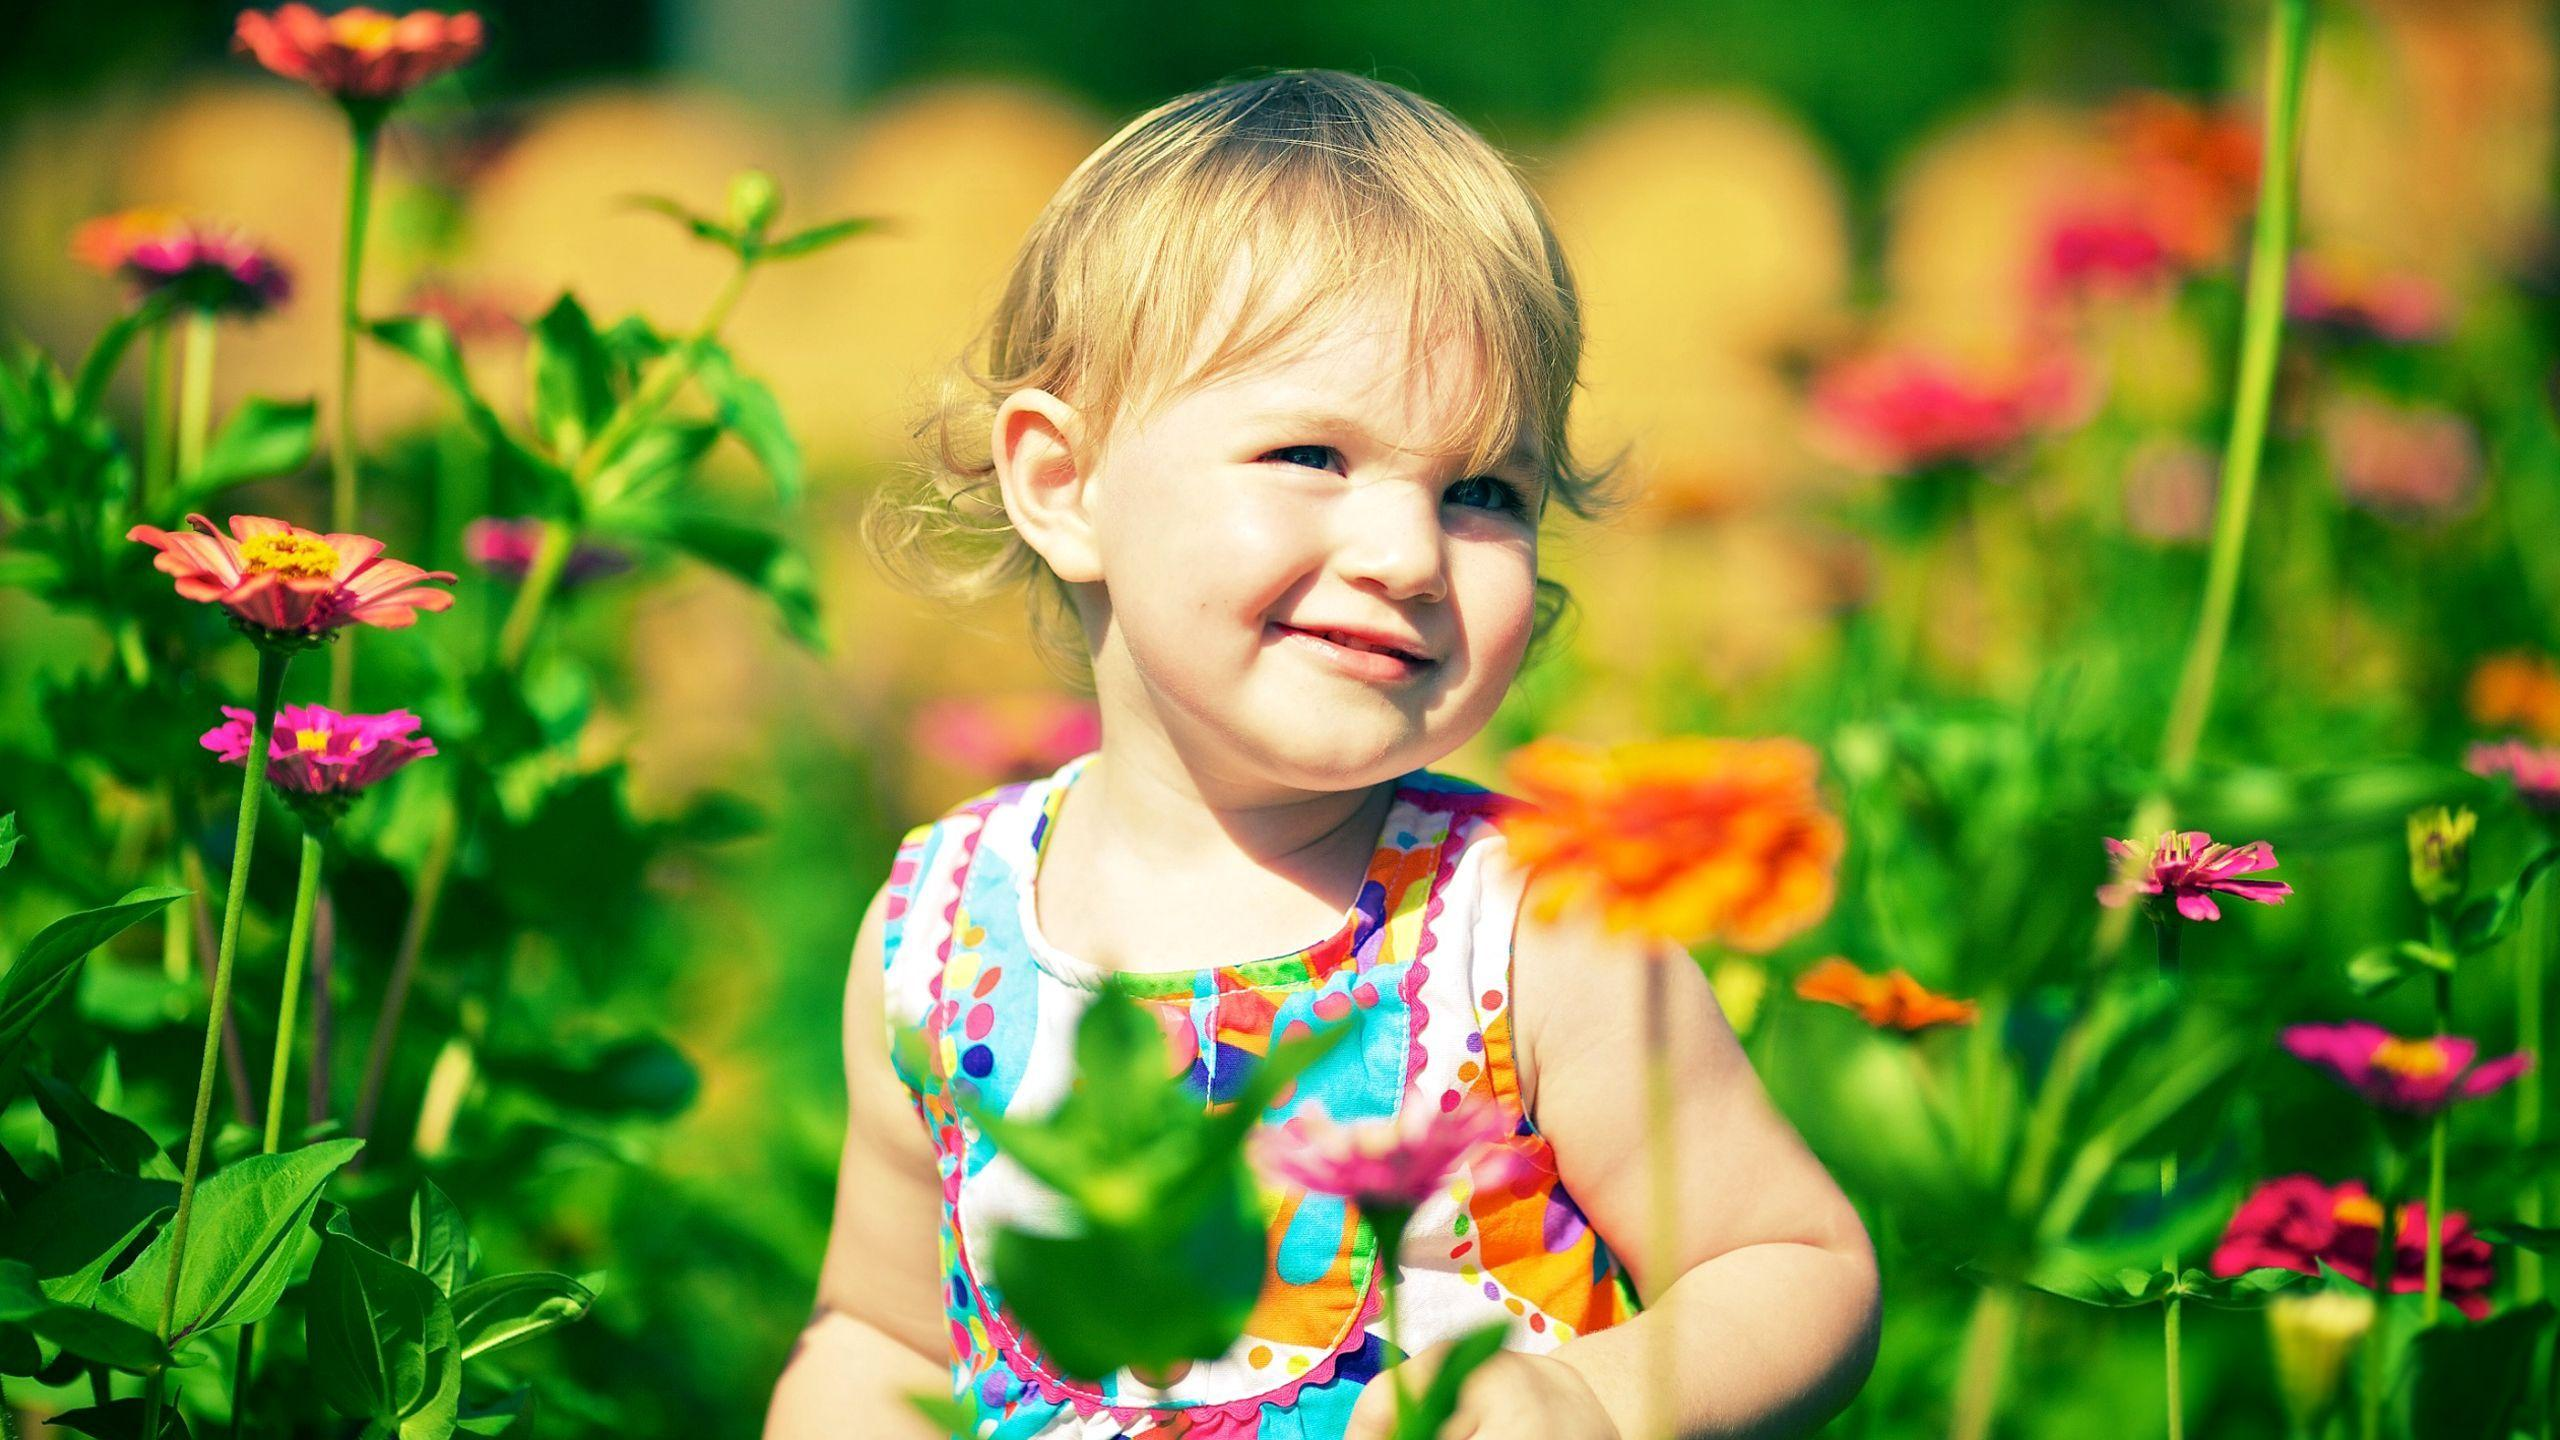 Cute Child Wallpapers Wallpaper Cave